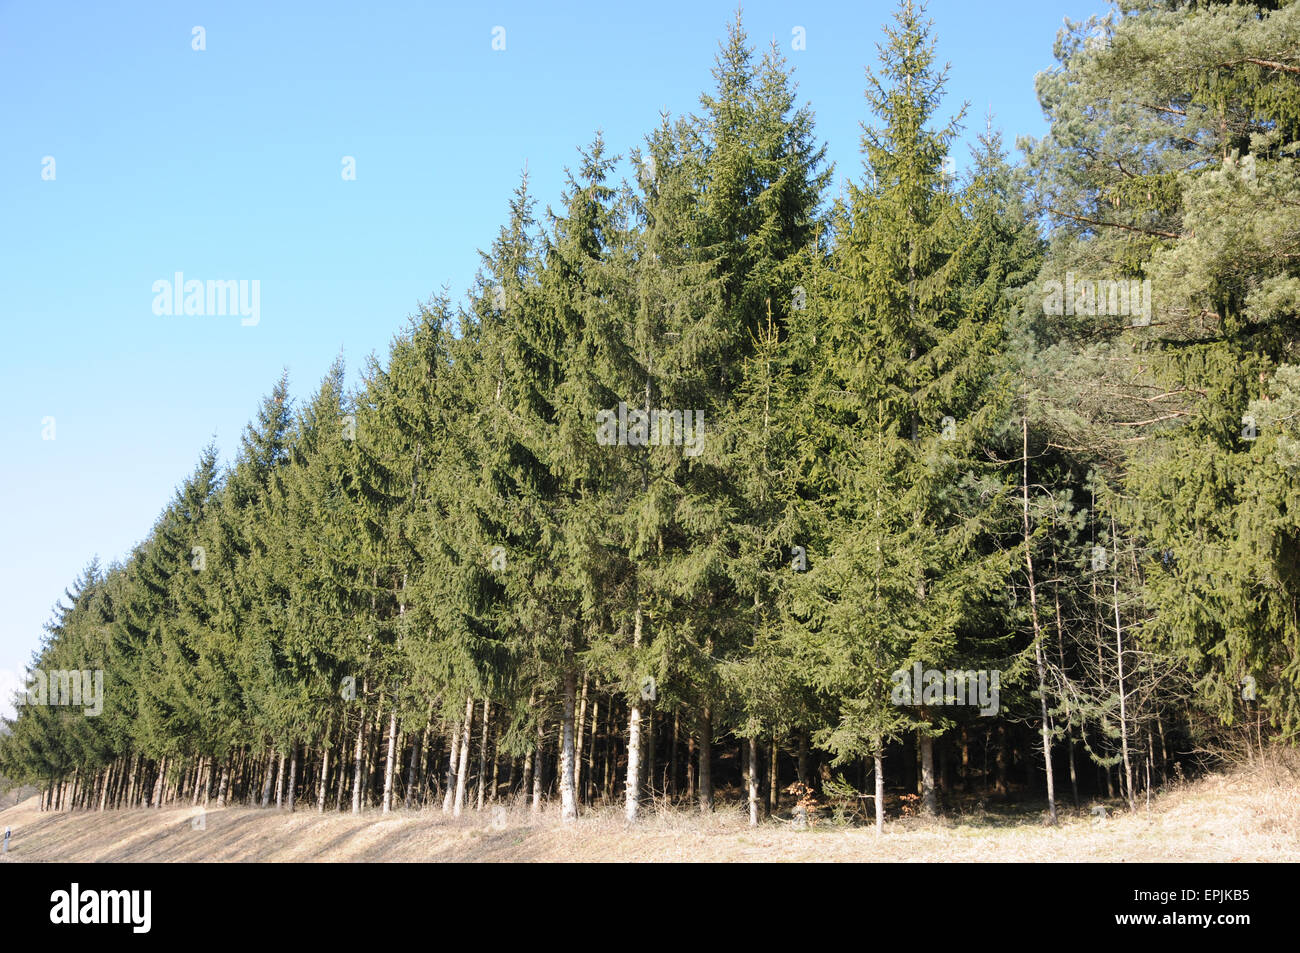 Norway spruce - Stock Image